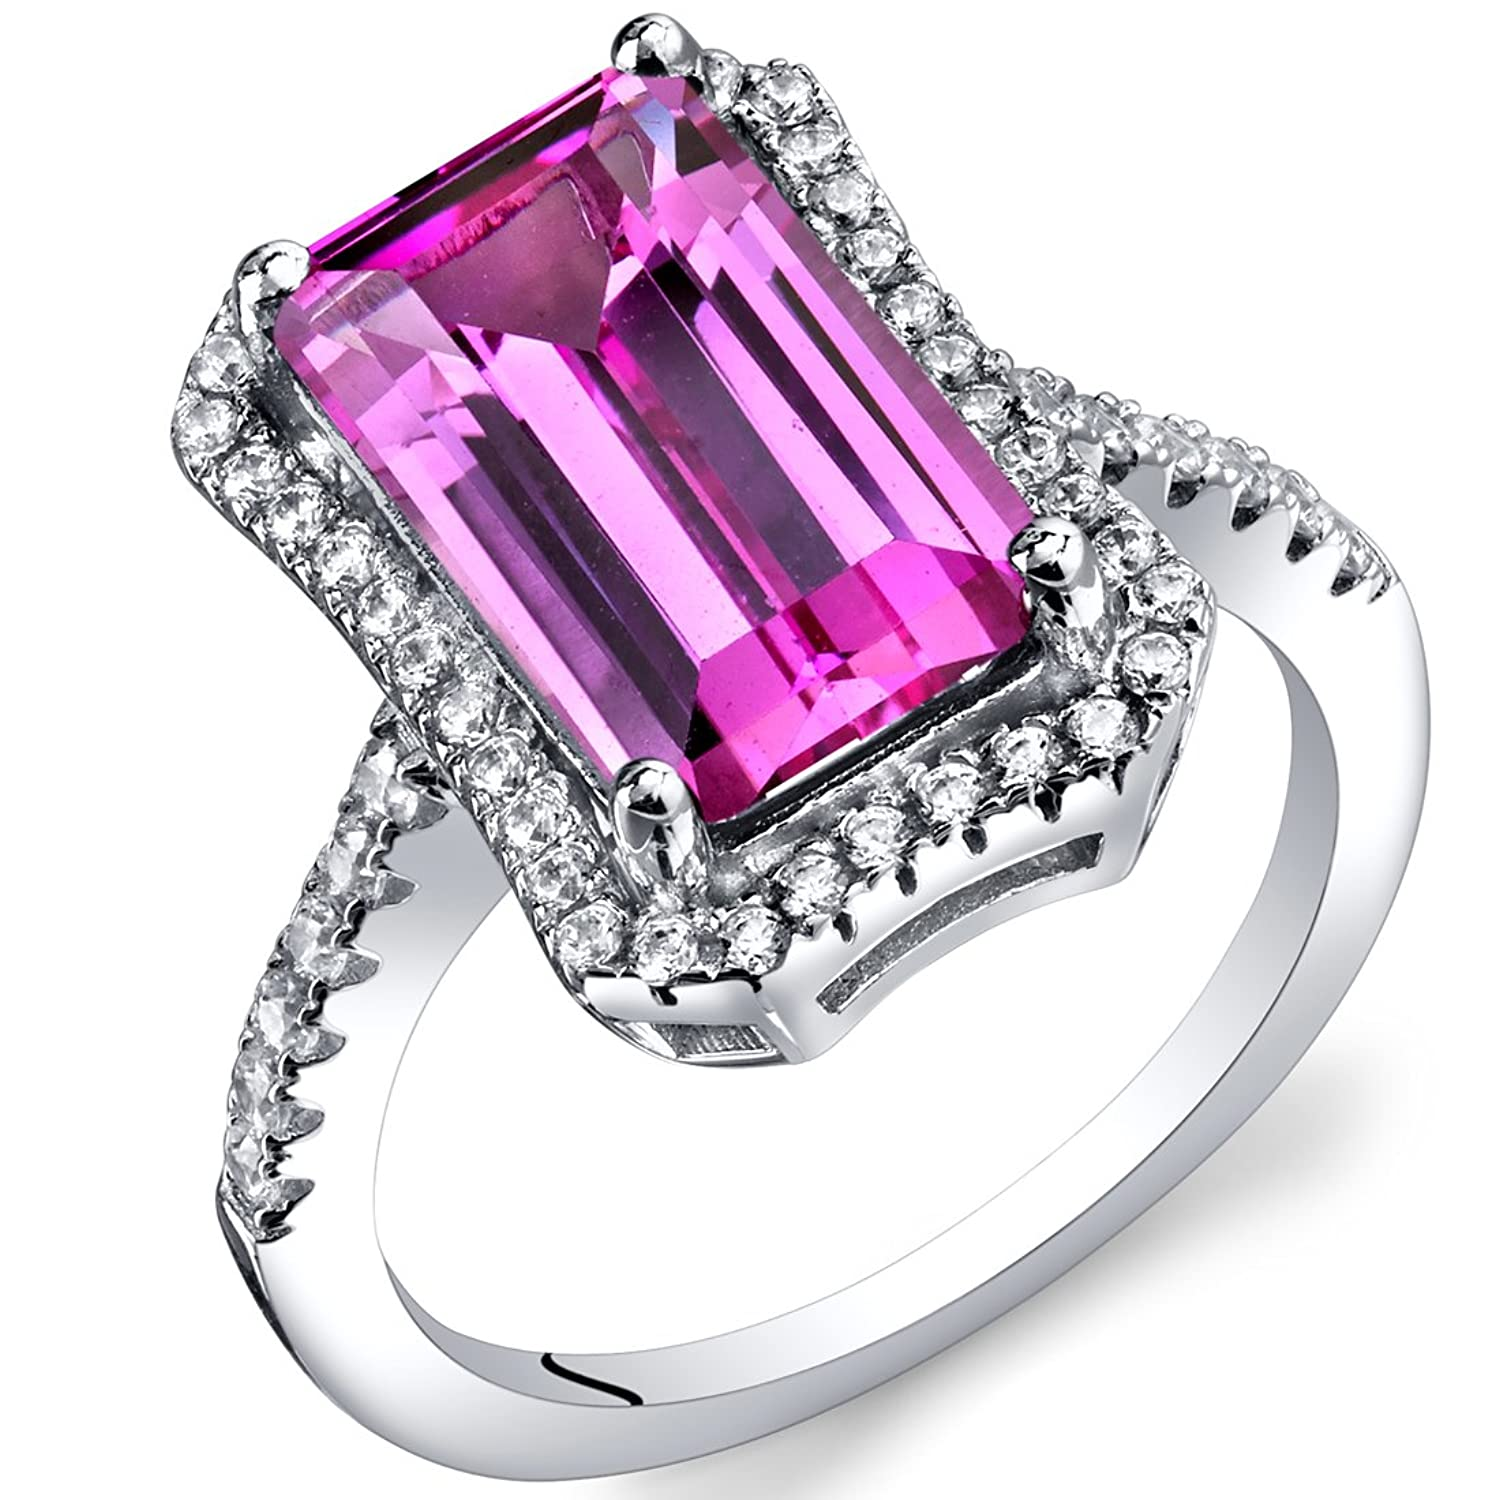 4.50 Carat Created Pink Sapphire Octagon Ring Sterling Silver Sizes 5 to 9